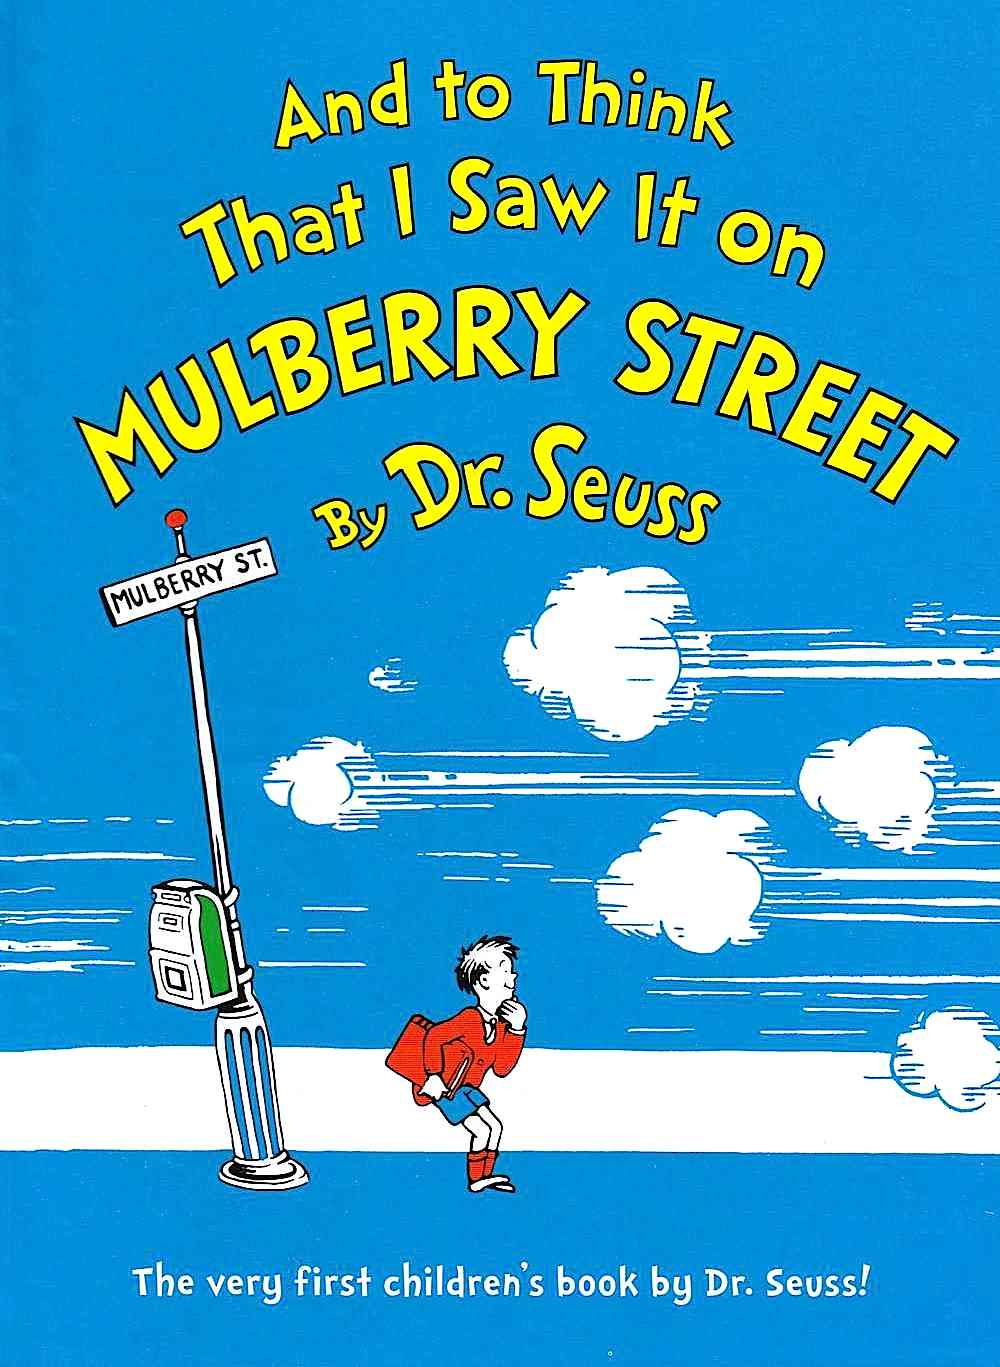 Dr. Seuss, and to think that I saw it on Mulberry street